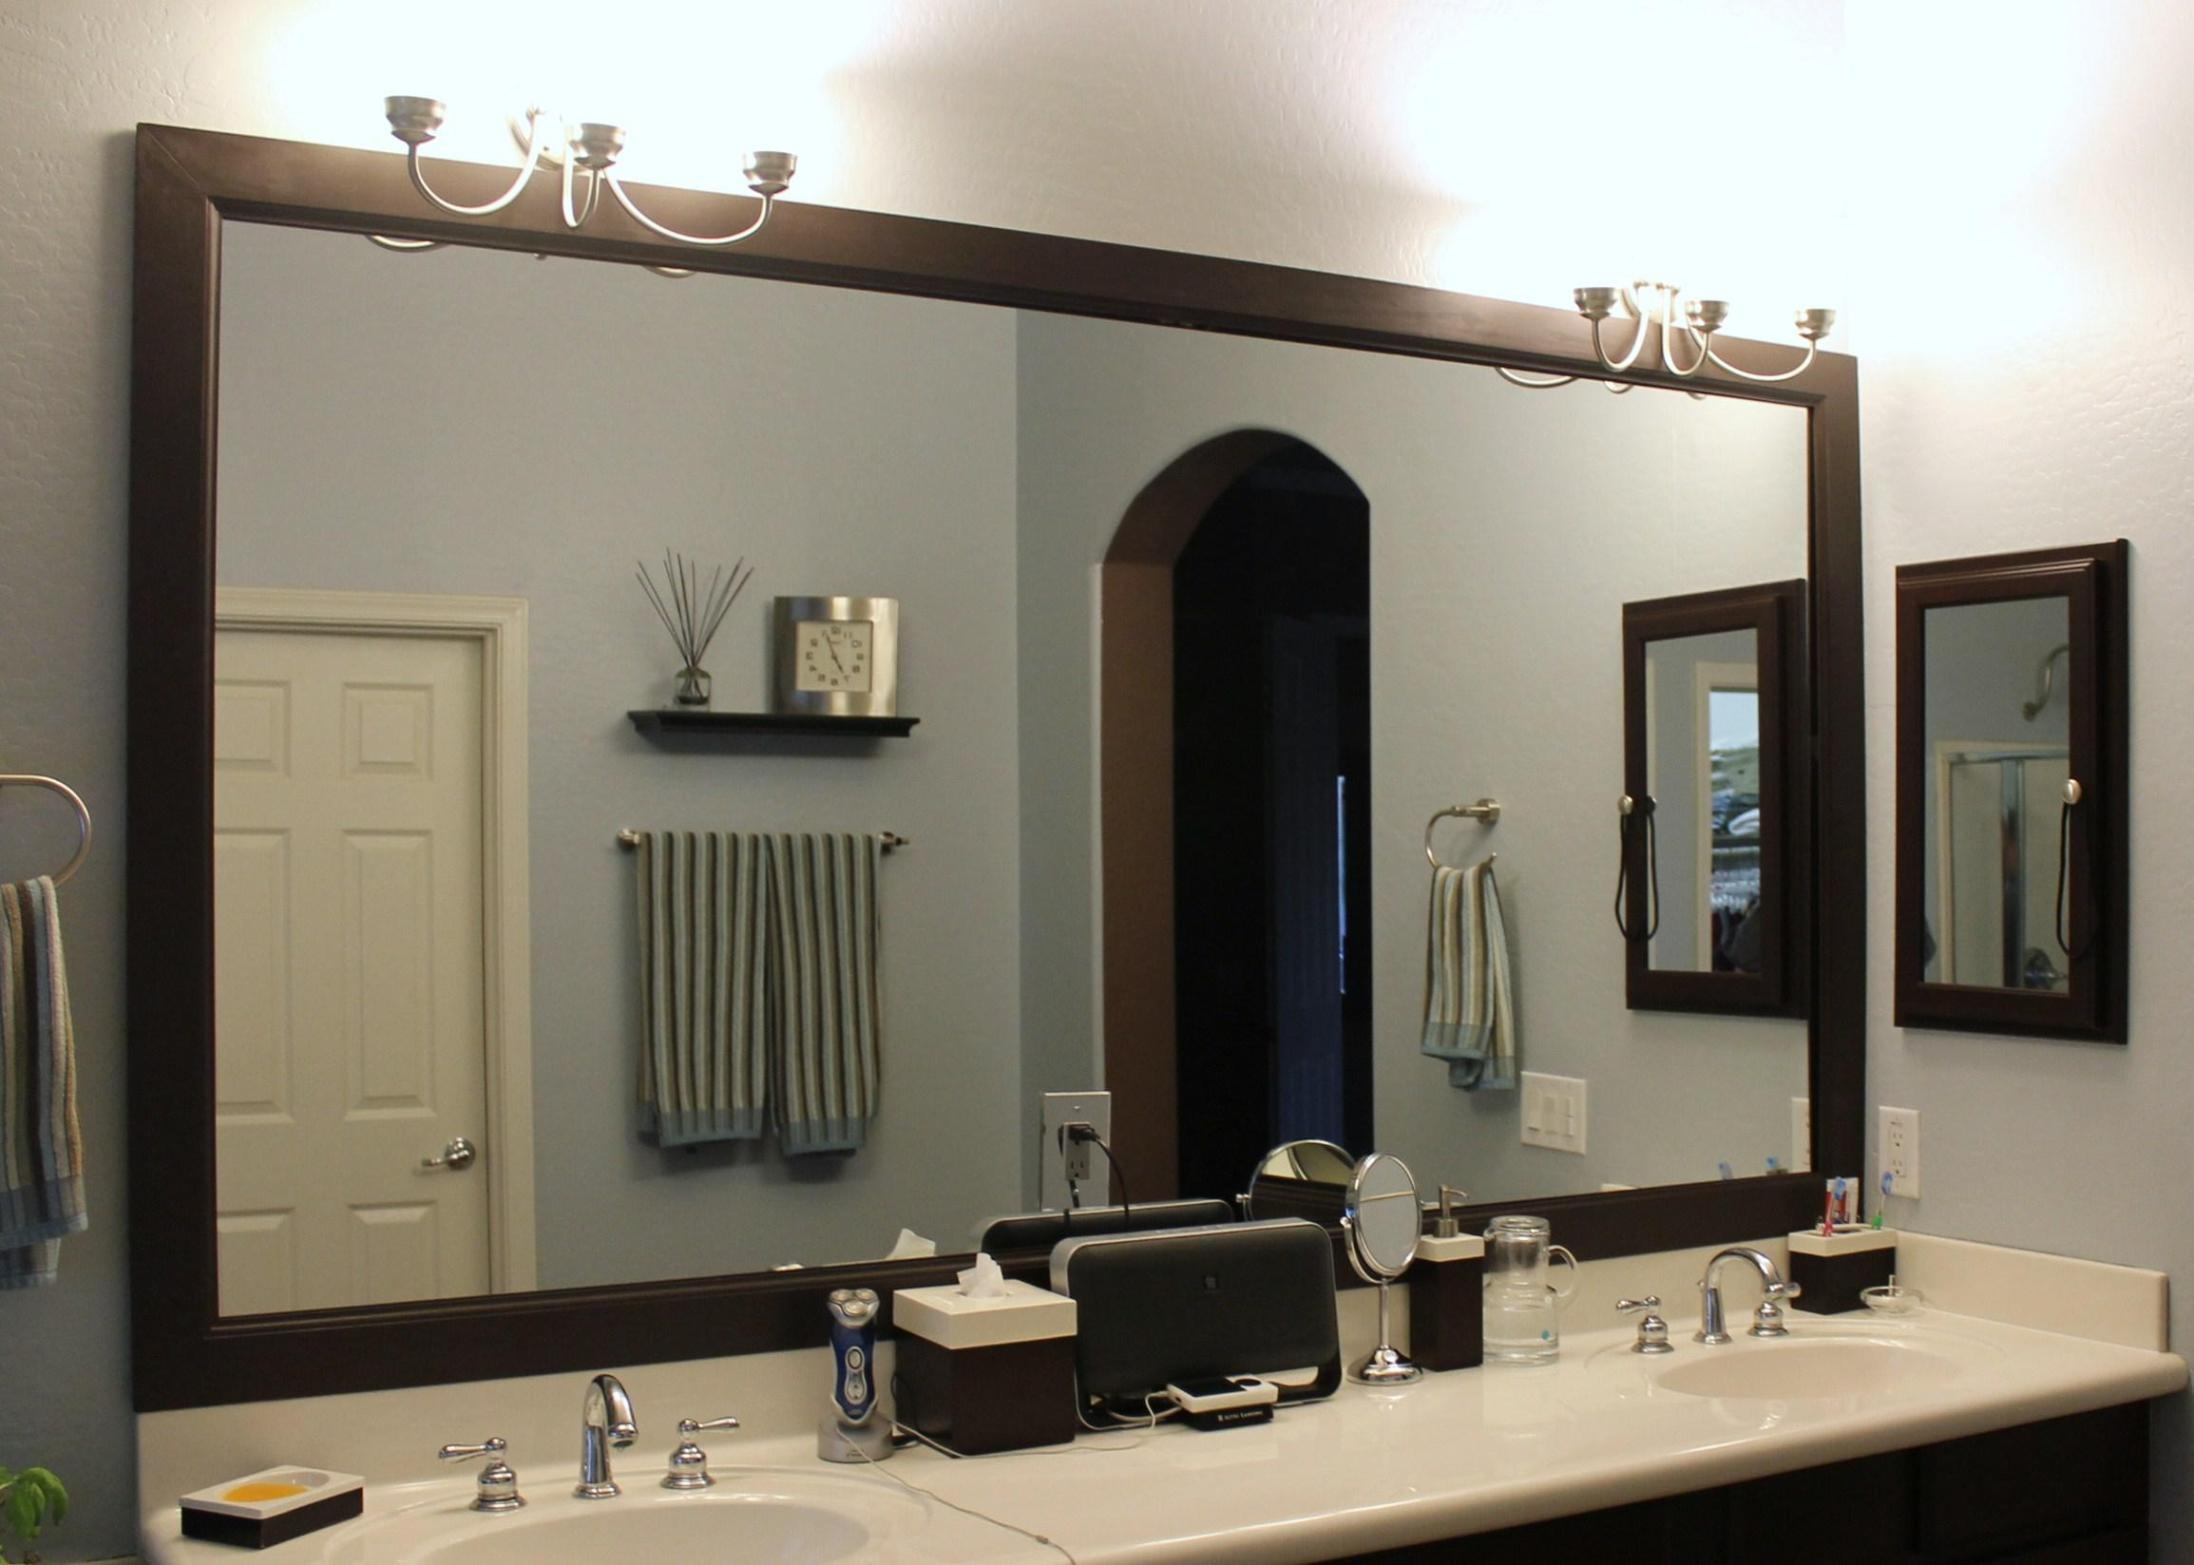 Framing A Large Bathroom Mirror 20 Collection Of Decorative Mirrors For Bathroom Vanity